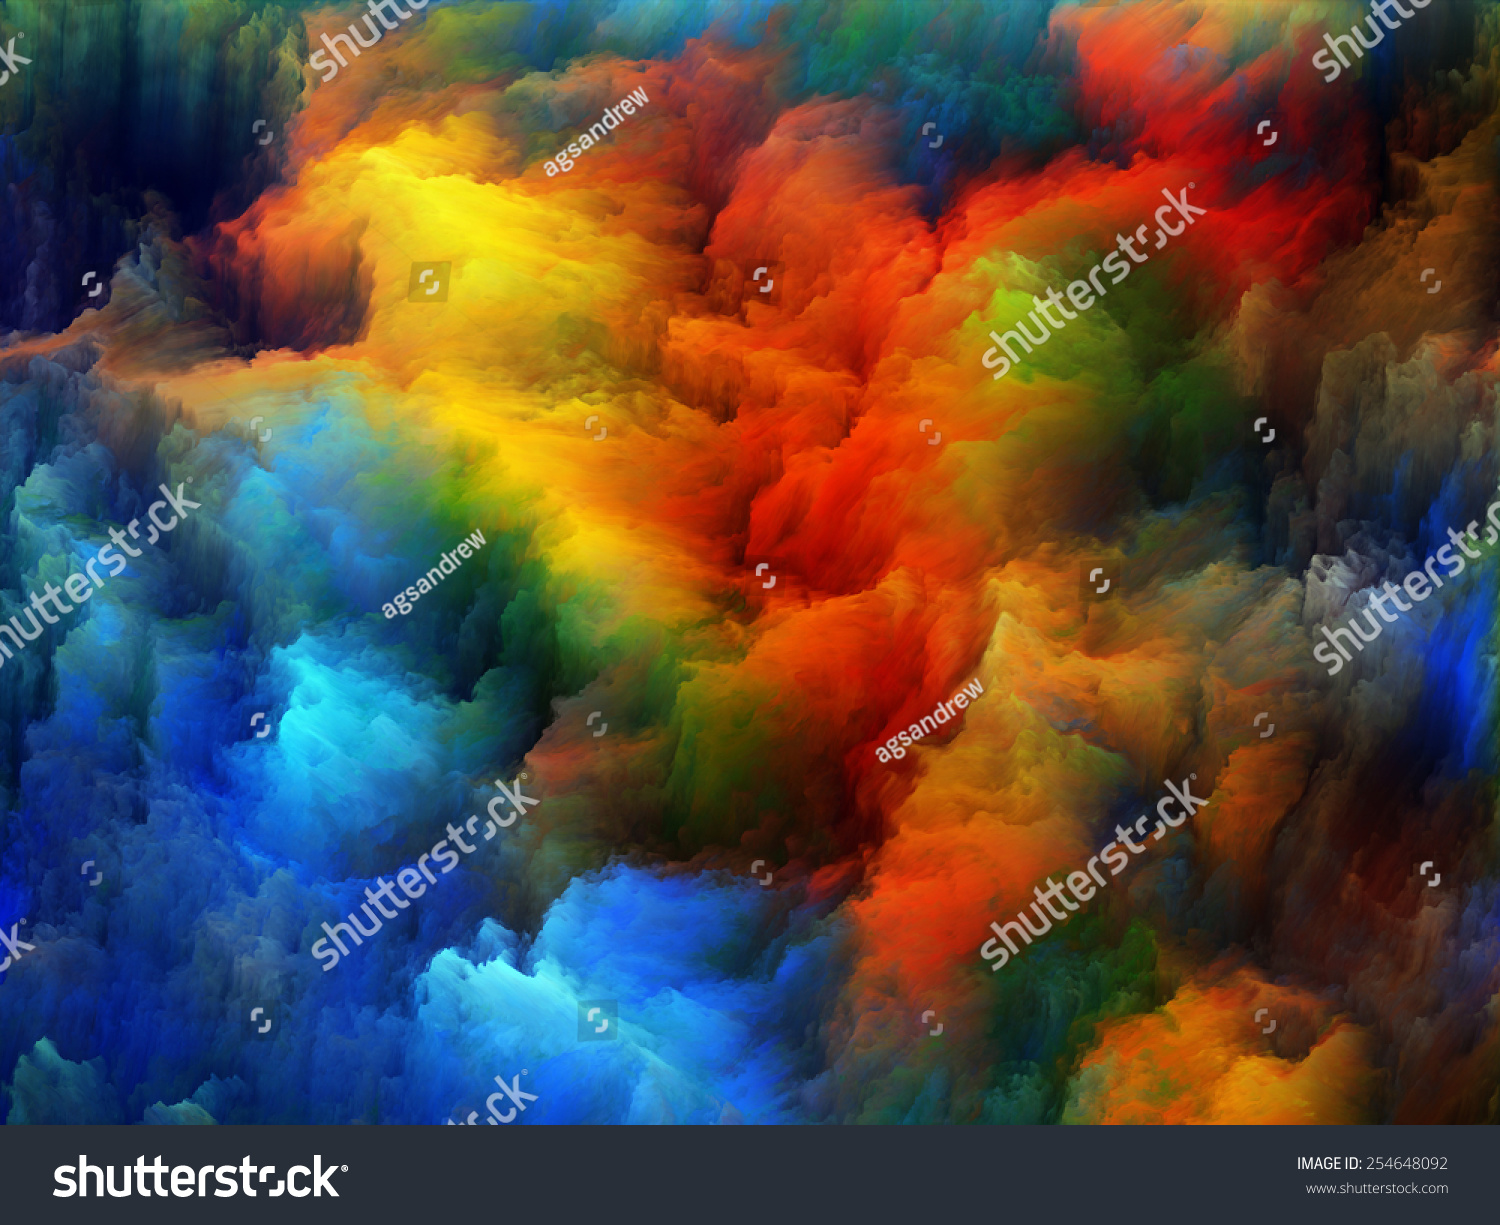 Color Design Art : Color explosion series abstract design made stock illustration